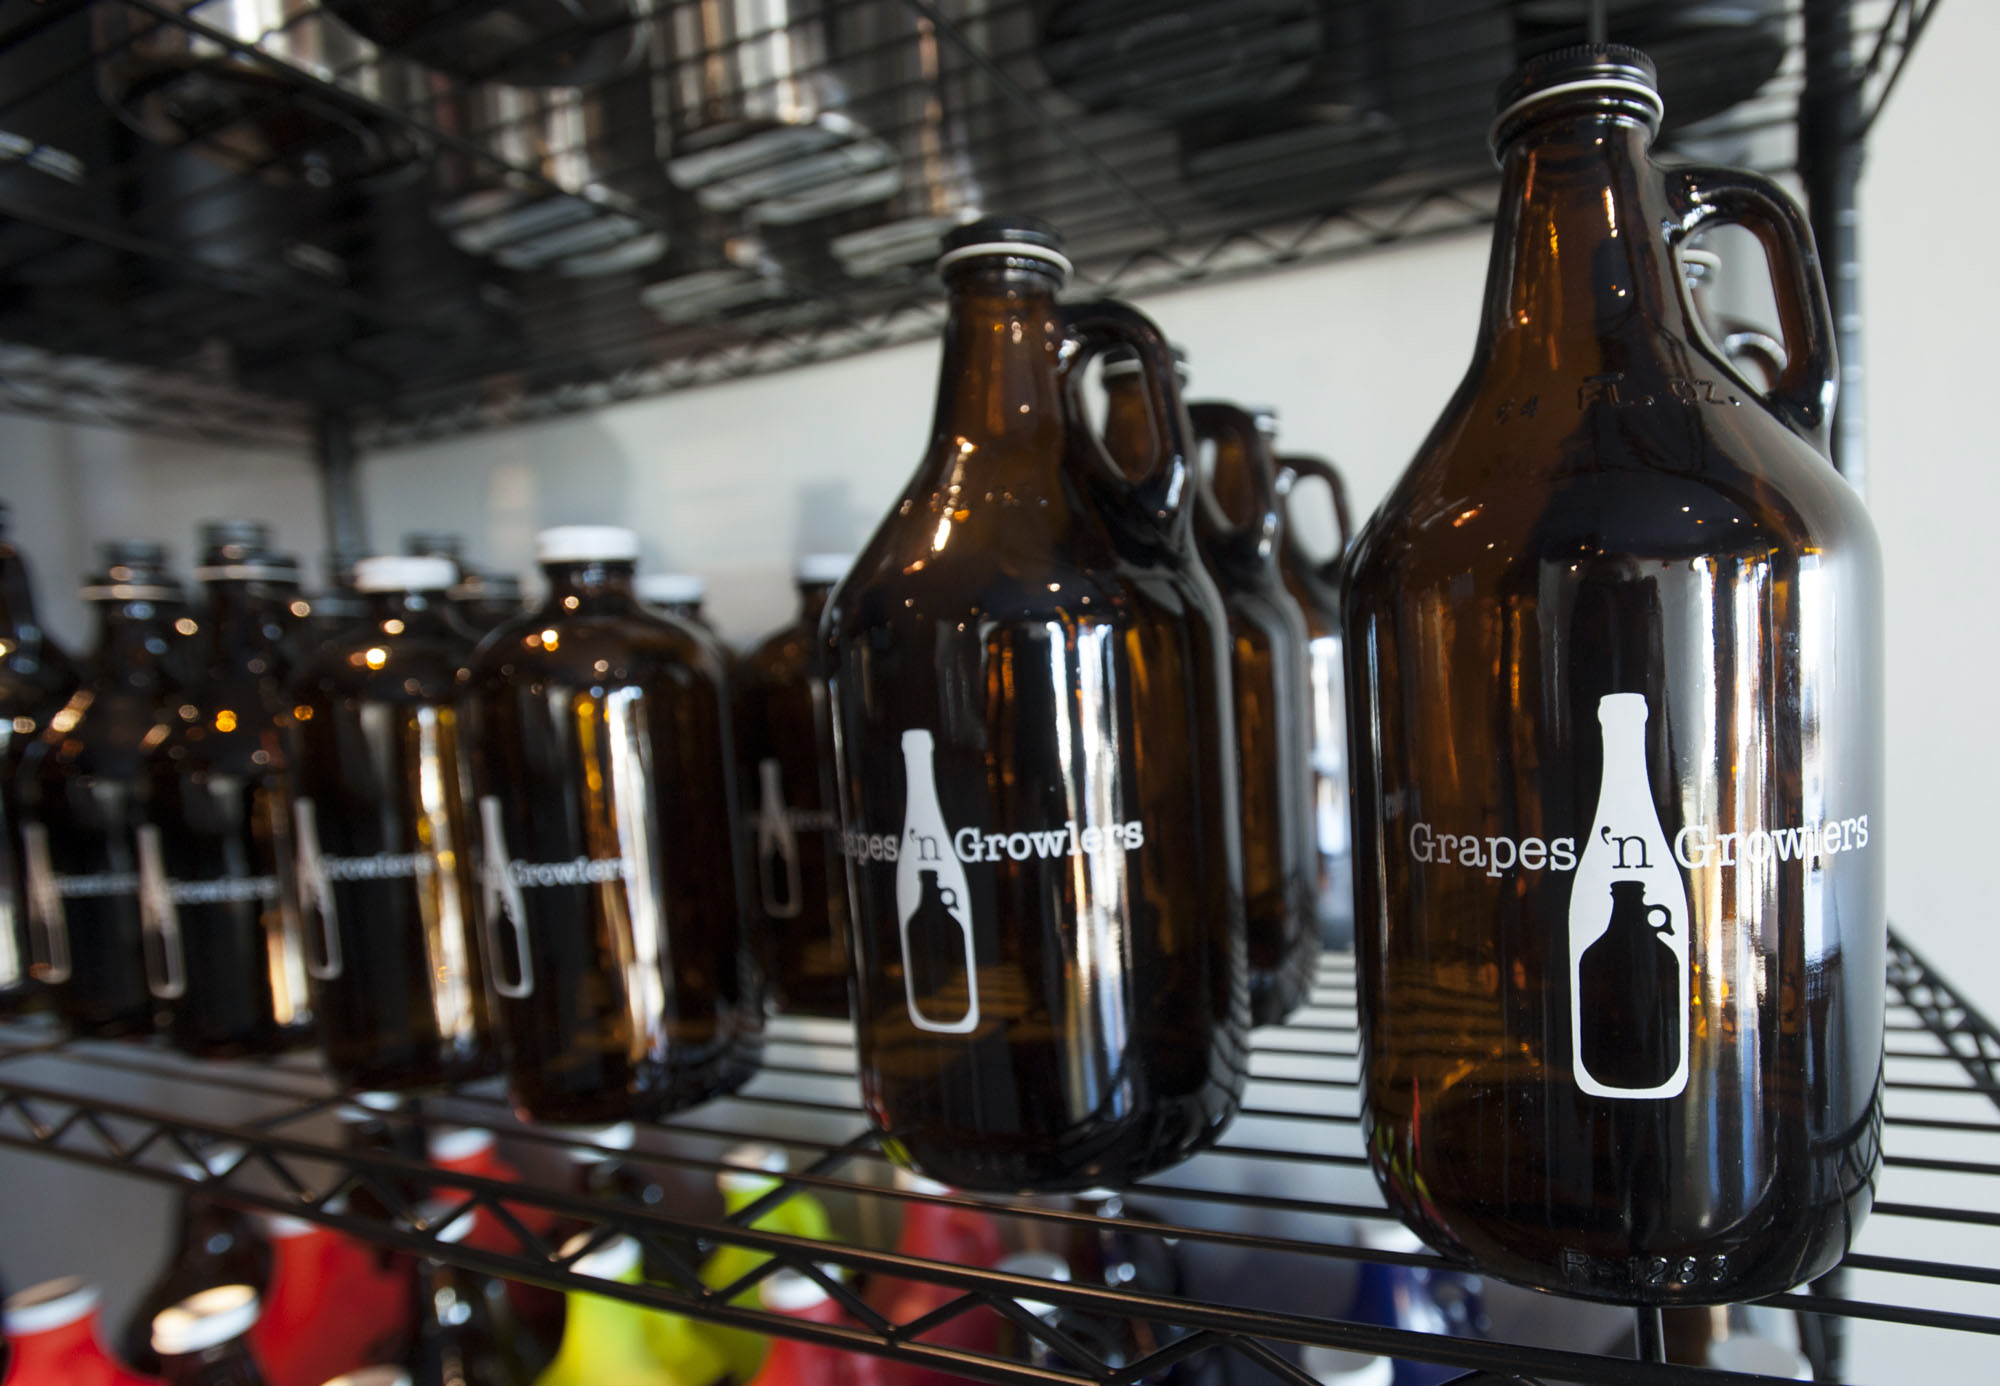 Wine and beer growlers are for sale at the new Vancouver tap room, Grapes 'n Growlers. (Natalie Behring/The Columbian)